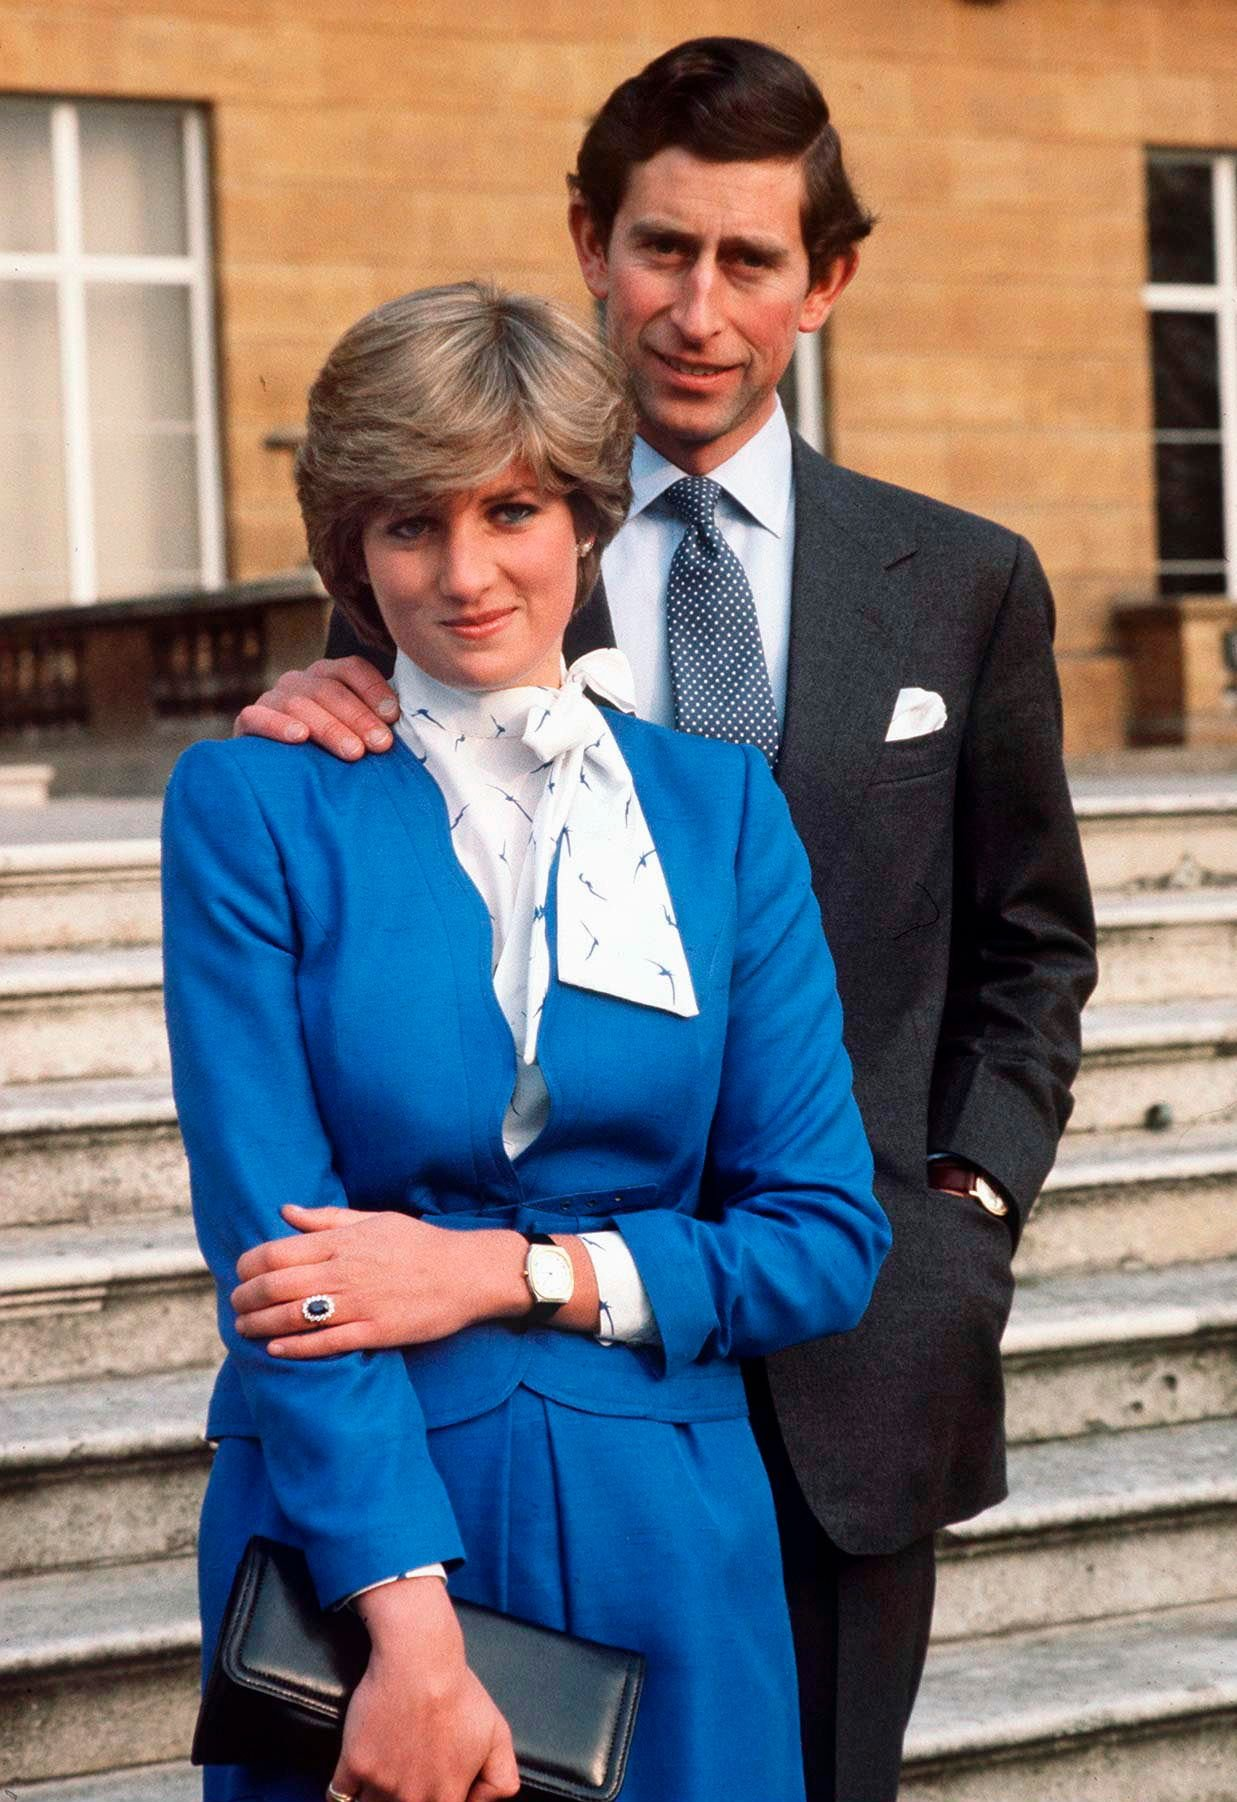 Lady Diana Spencer et le prince Charles.   Photo : Getty Images